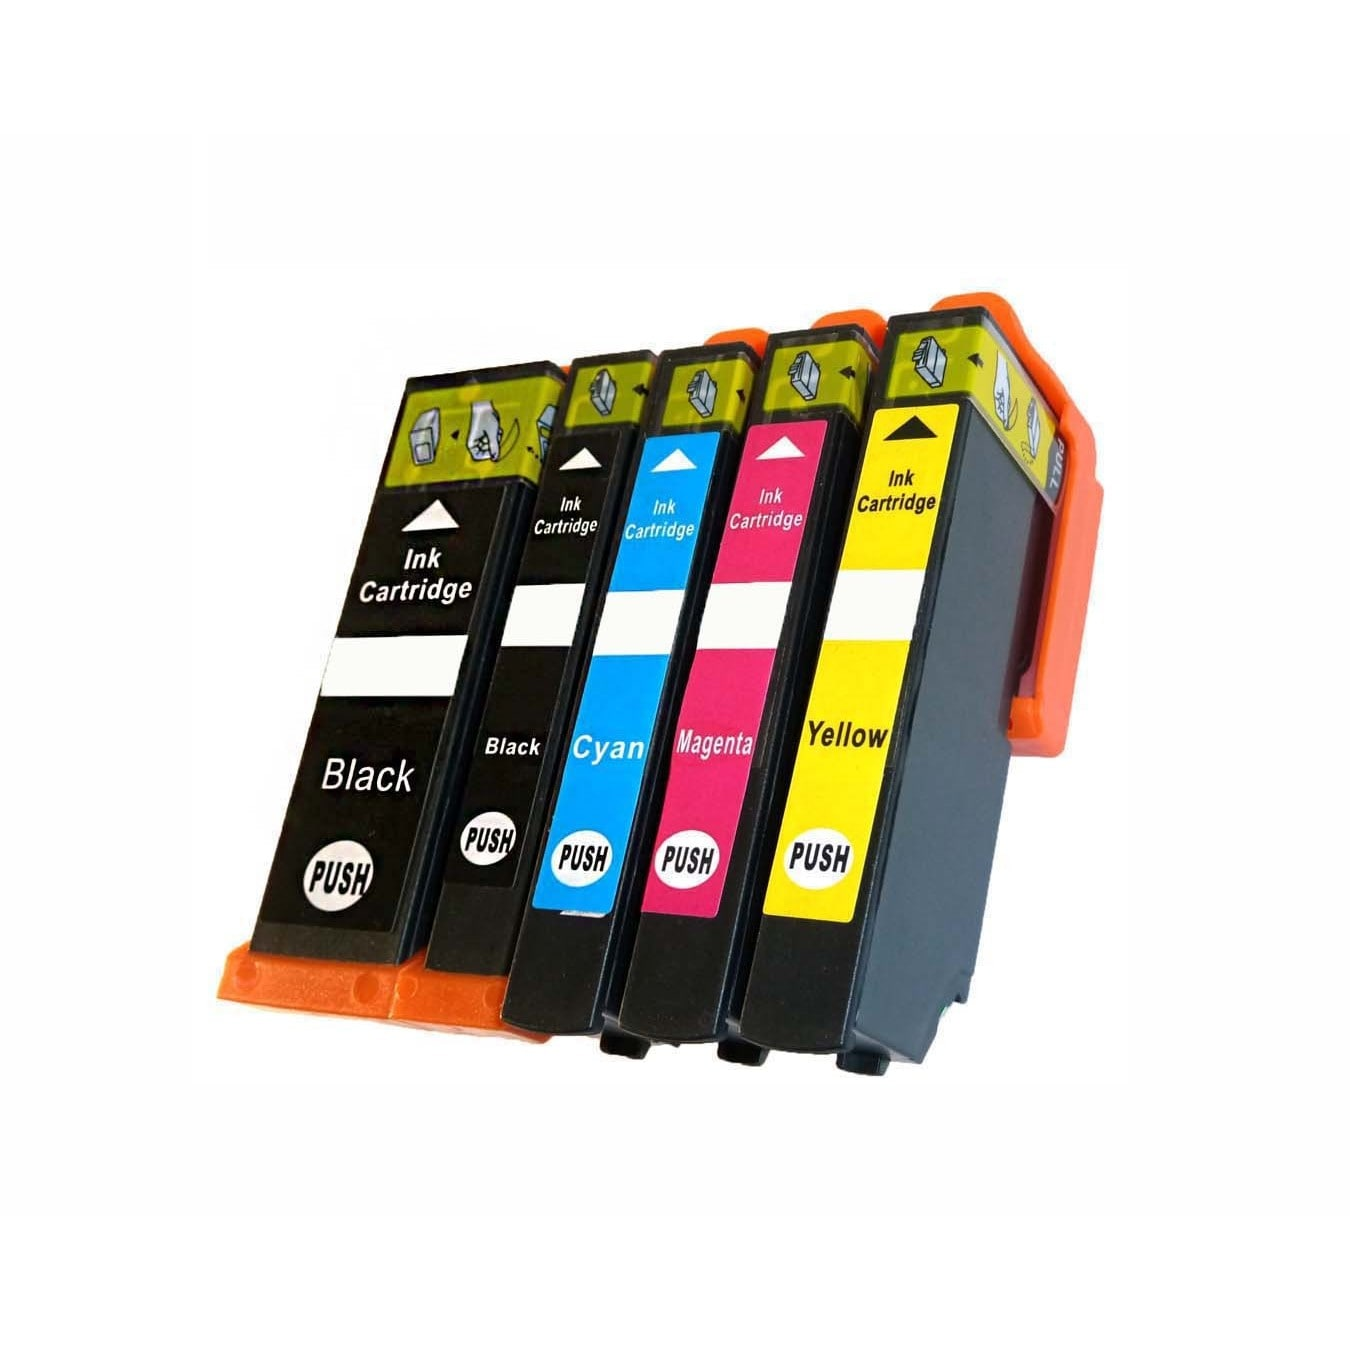 Shop 5pk 1xlk 1k 1c 1m 1y Replacing Canon Pgi 250 Cli 251 Ink Cartridge 29 Photo Magenta For Pixma Ip7220 Mg5420 M Ships To Canada 8979476